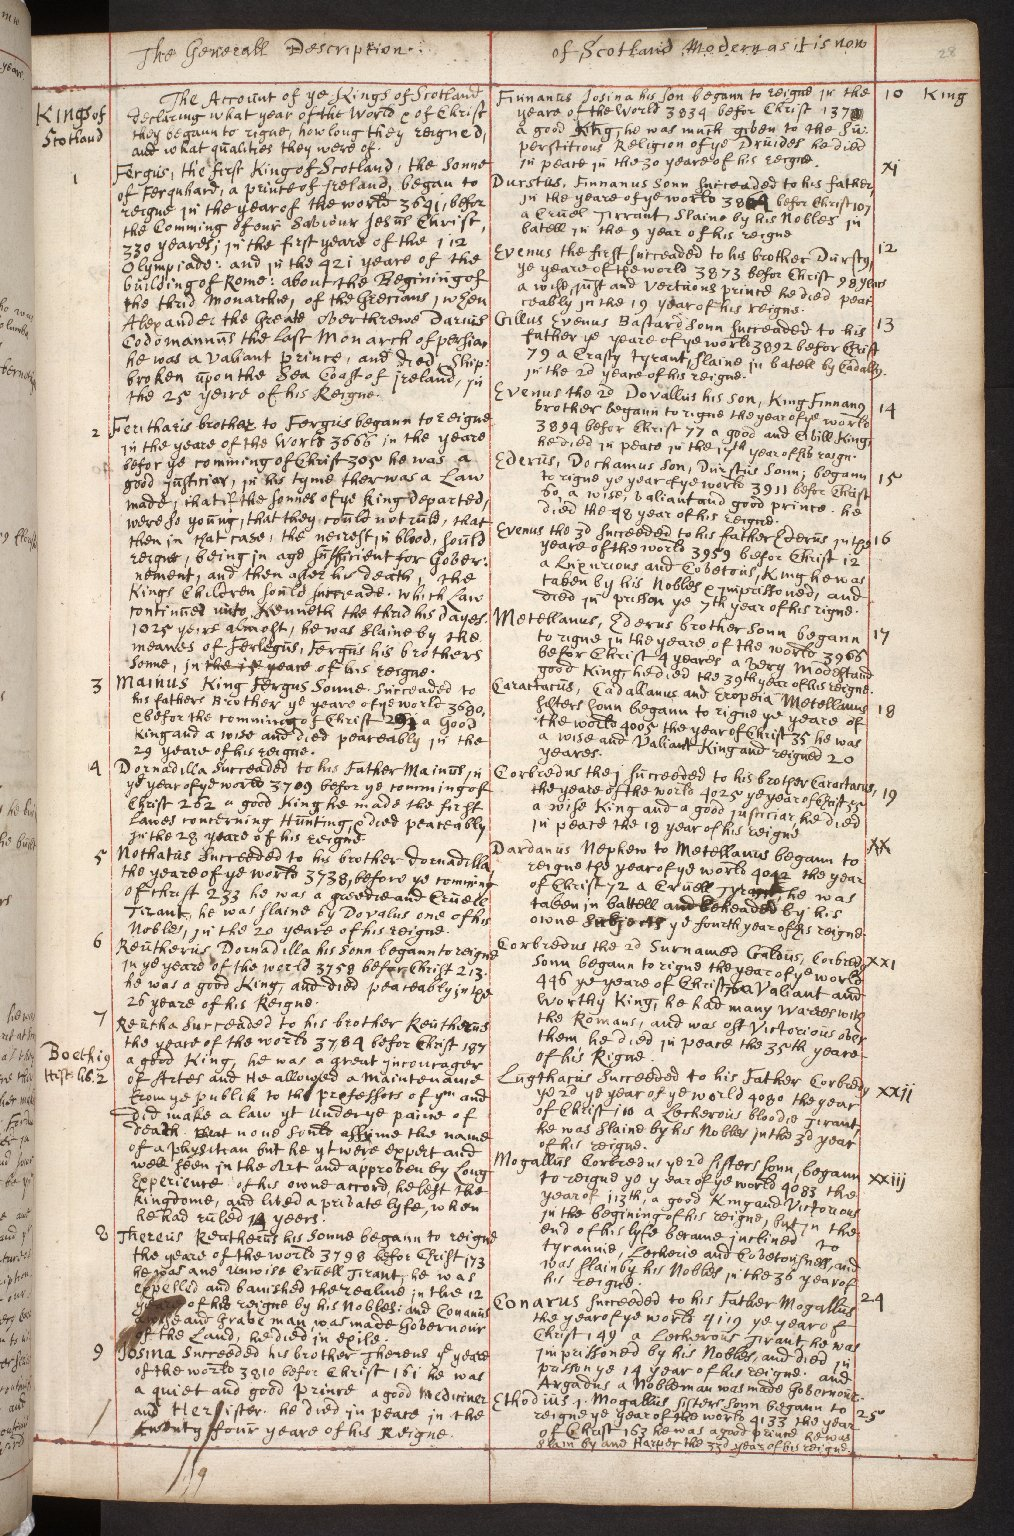 Atlas Scoticus, or a Description of Scotland Ancient and Modern. [039 of 259]